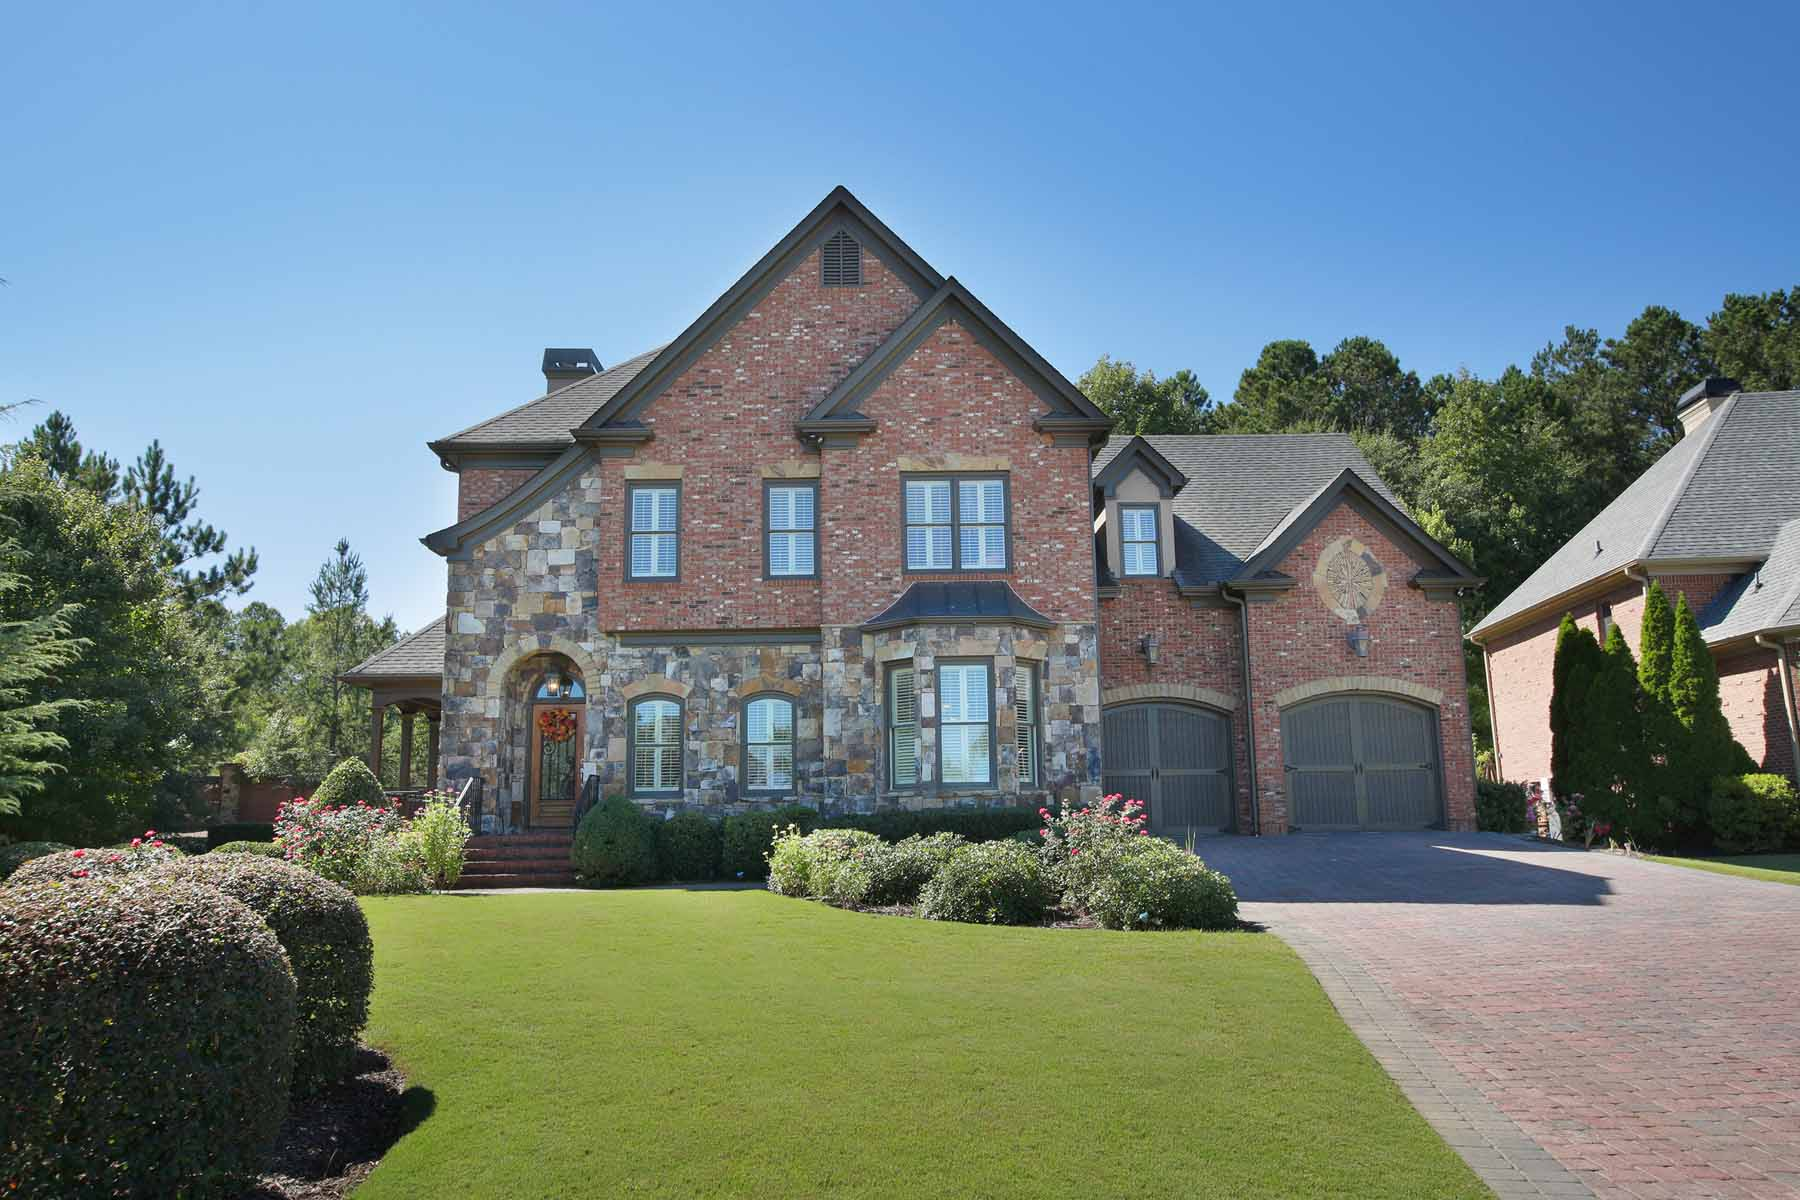 獨棟家庭住宅 為 出售 在 Mediterranean Style Brick And Stone Home On Fabulous Lot In Culdesac 8365 Royal Melbourne Way Duluth, 喬治亞州, 30097 美國